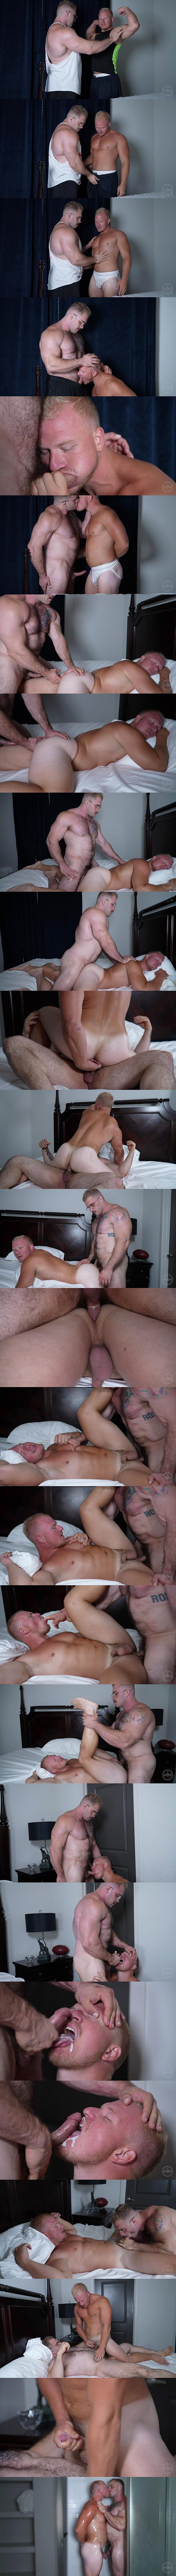 Big hairy muscle man Davin Strong fucks football stud Knox's tight virgin ass before nuts in Knox's mouth in Knox's bottoming debut in Popping Knox's Cherry at Theguysite 01